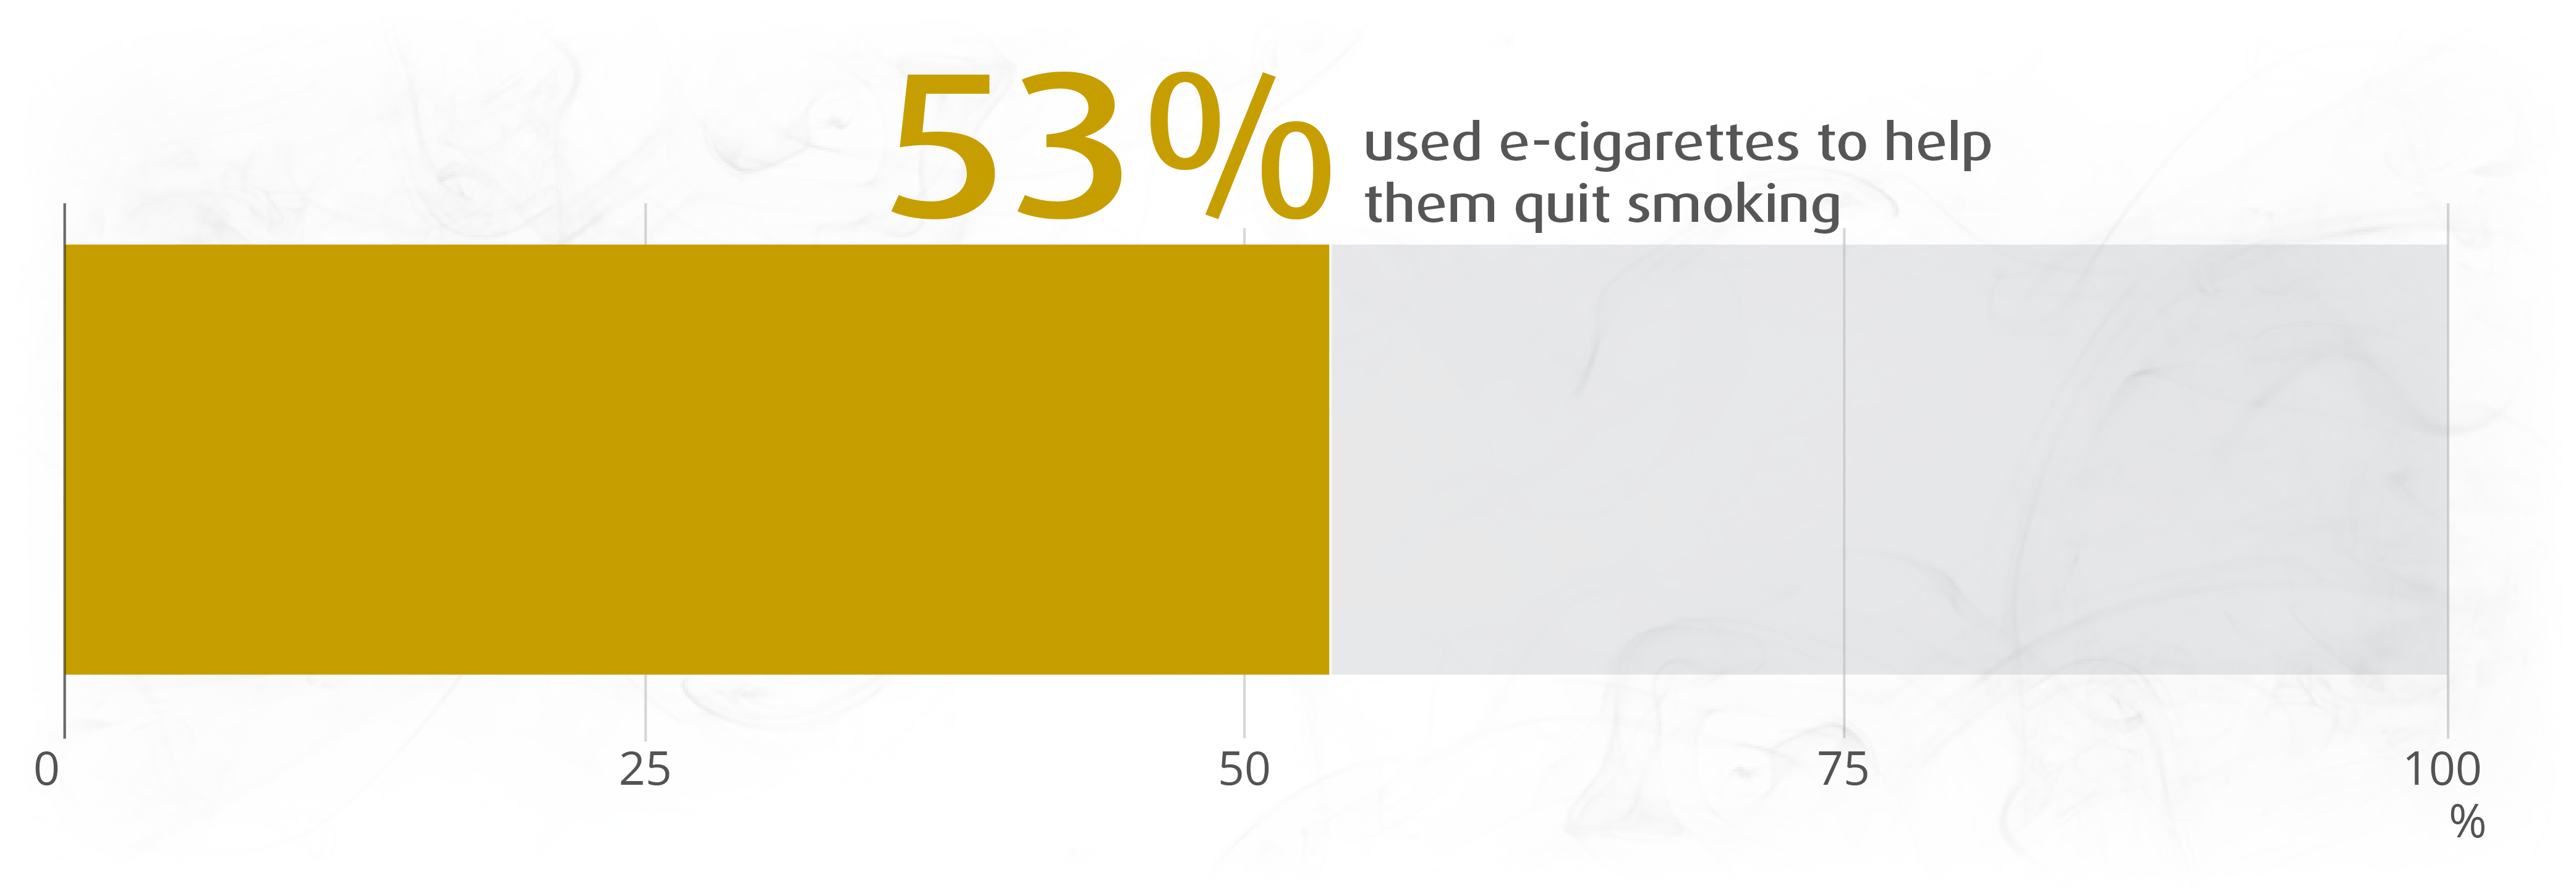 Image result for images of e-cigarettes helping people quit smoking